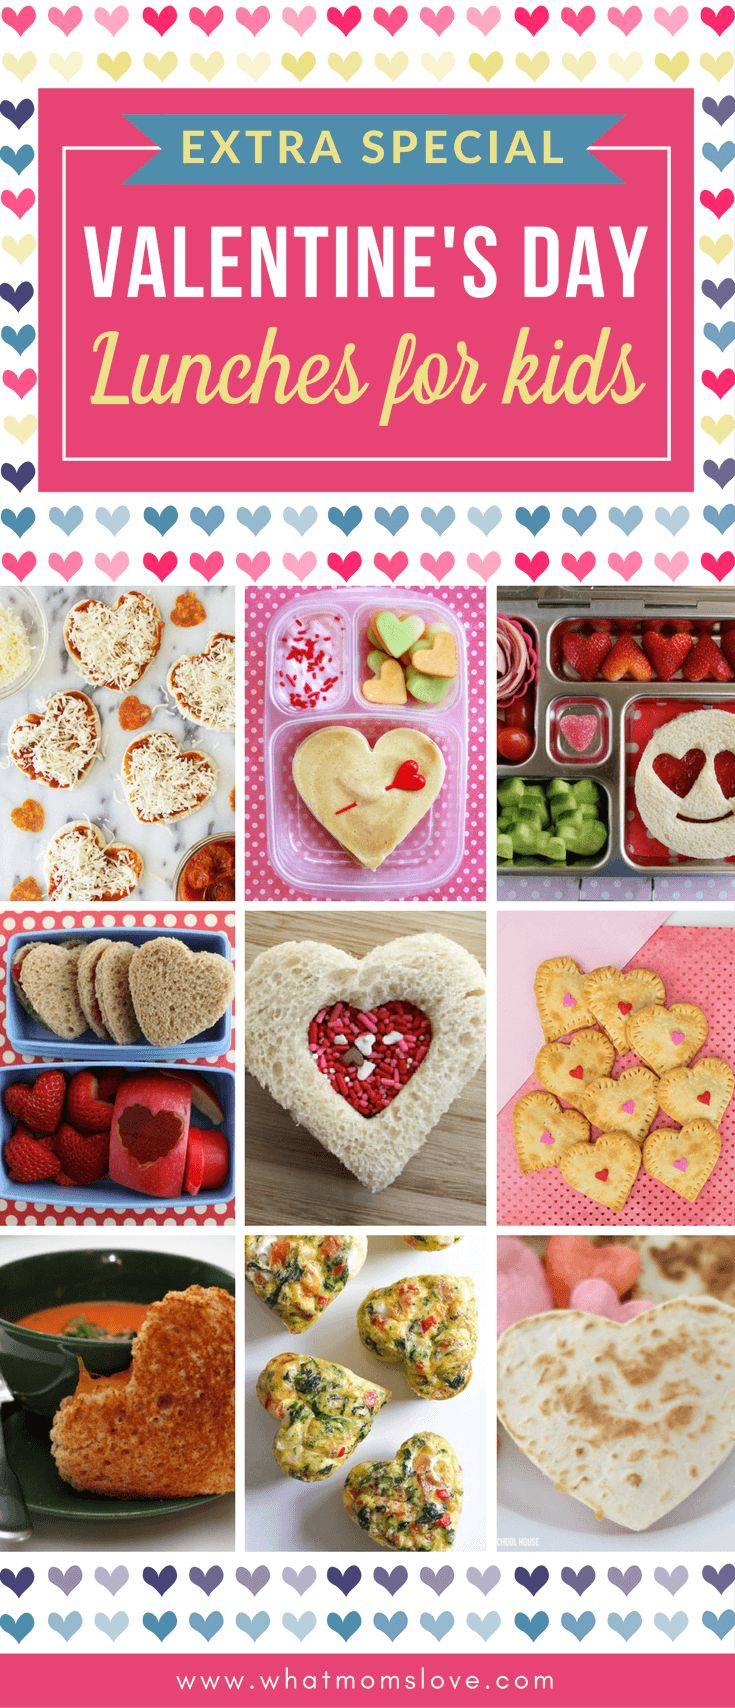 Valentines Day Lunch Ideas for Kids | Fun, simple recipes for mom or dad to make for children using cookie cutters and plenty of heart shapes. Cute bento box ideas for Valentines Day too!